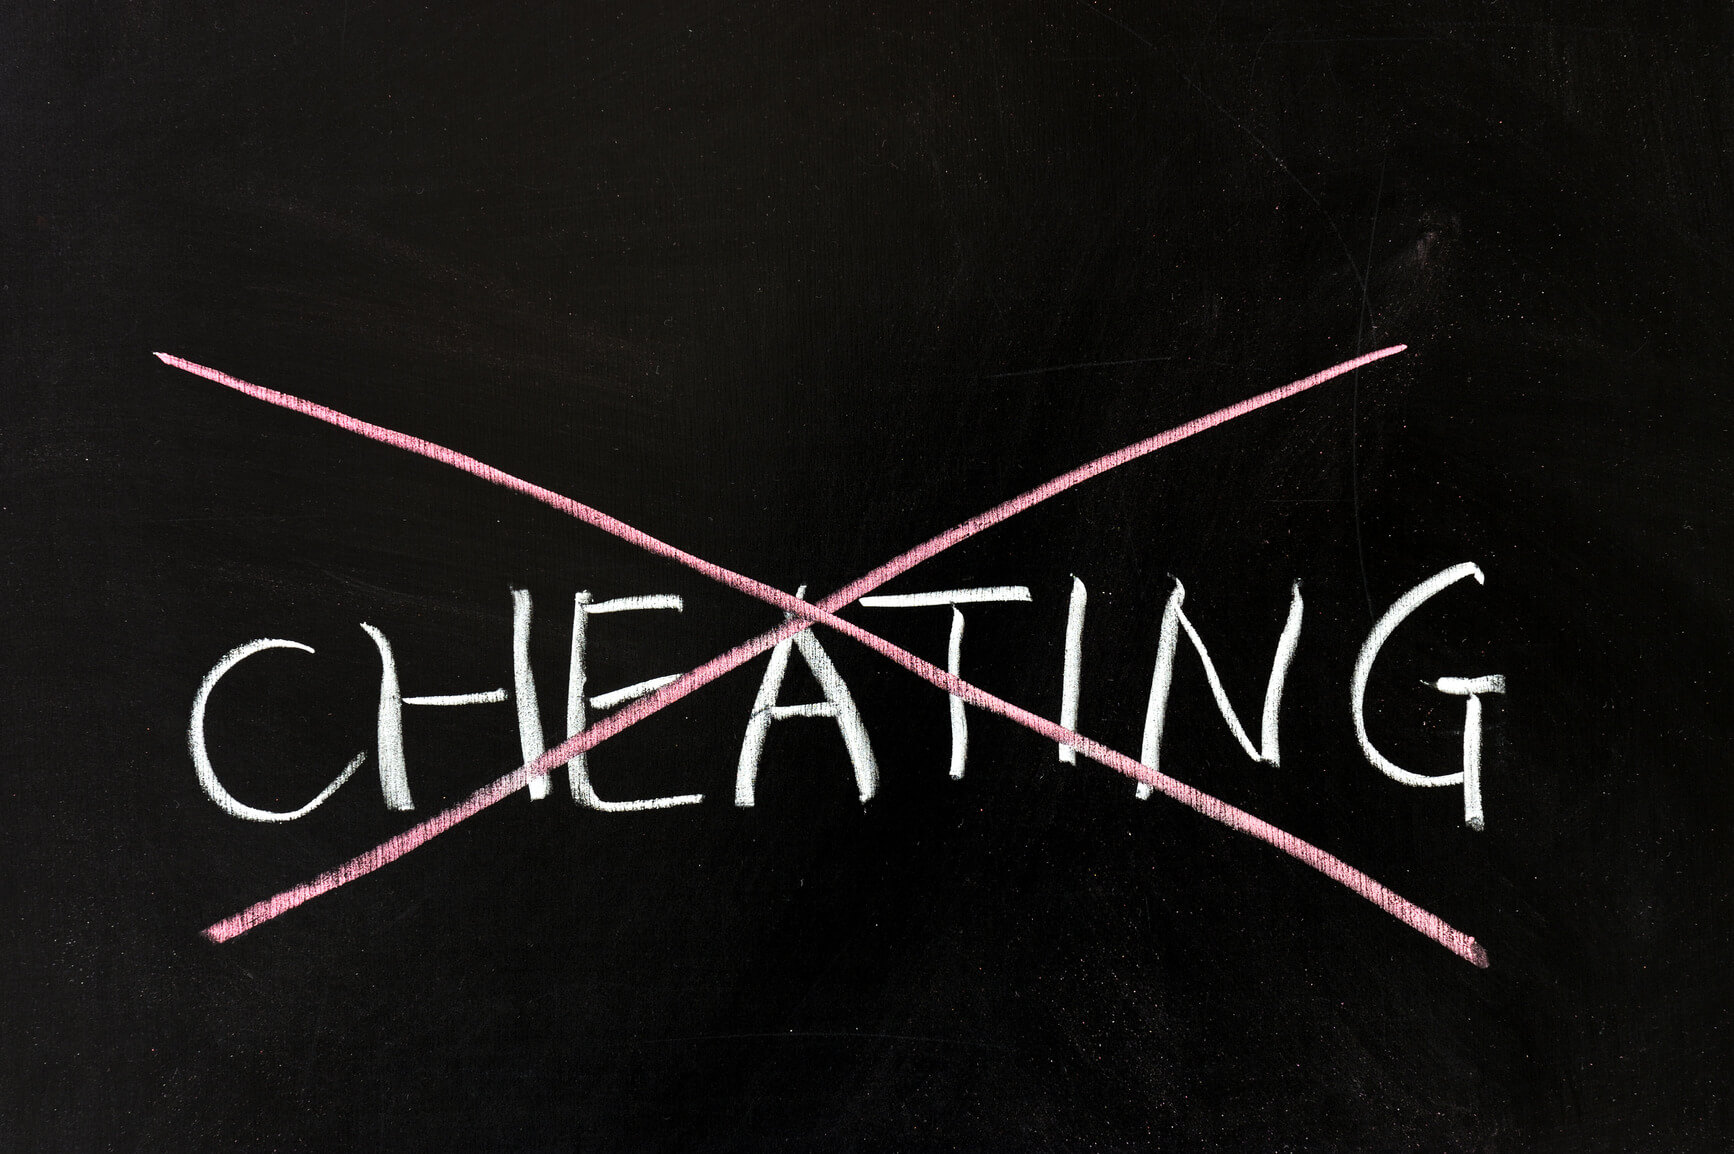 Short essay on cheating in exams